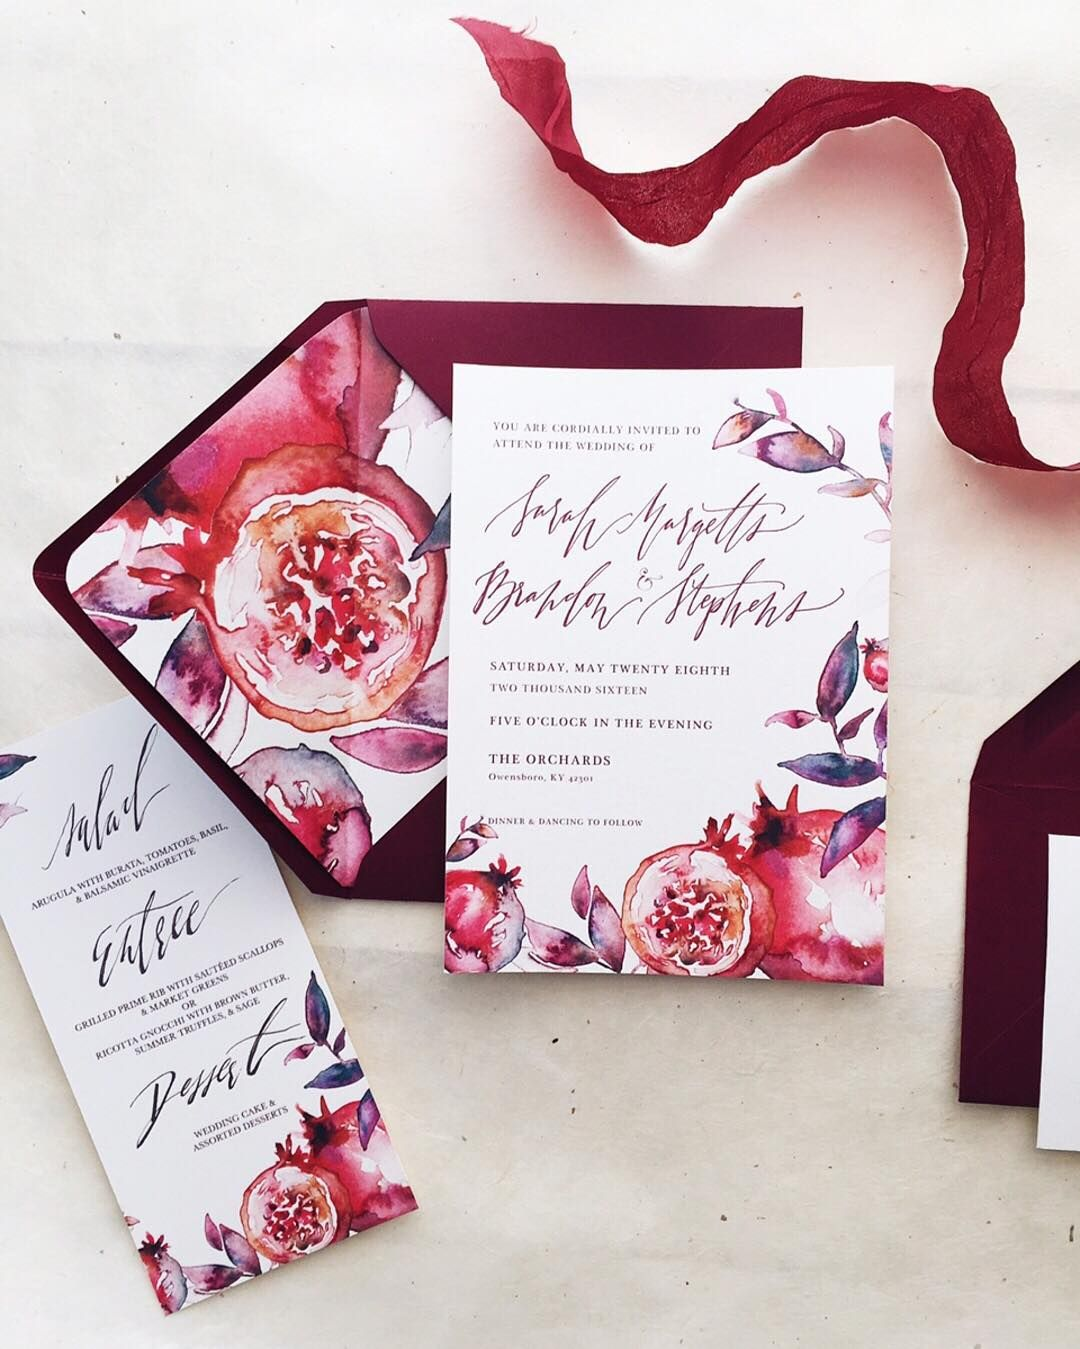 Pomegranate Wedding Invitations, Hand Painted, Embellished in ...